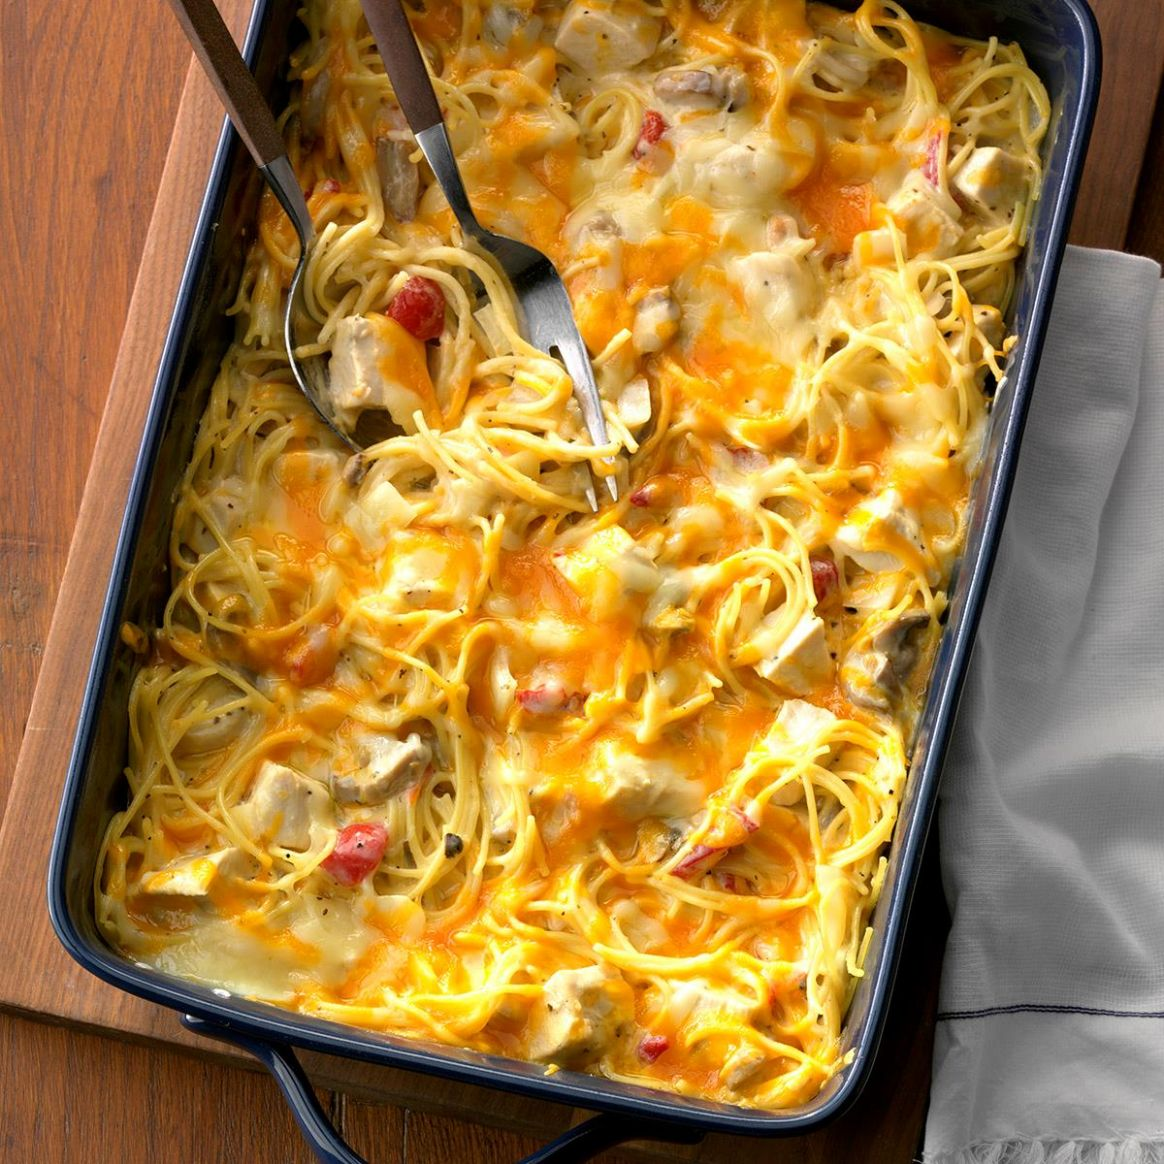 Hearty Chicken Spaghetti Casserole